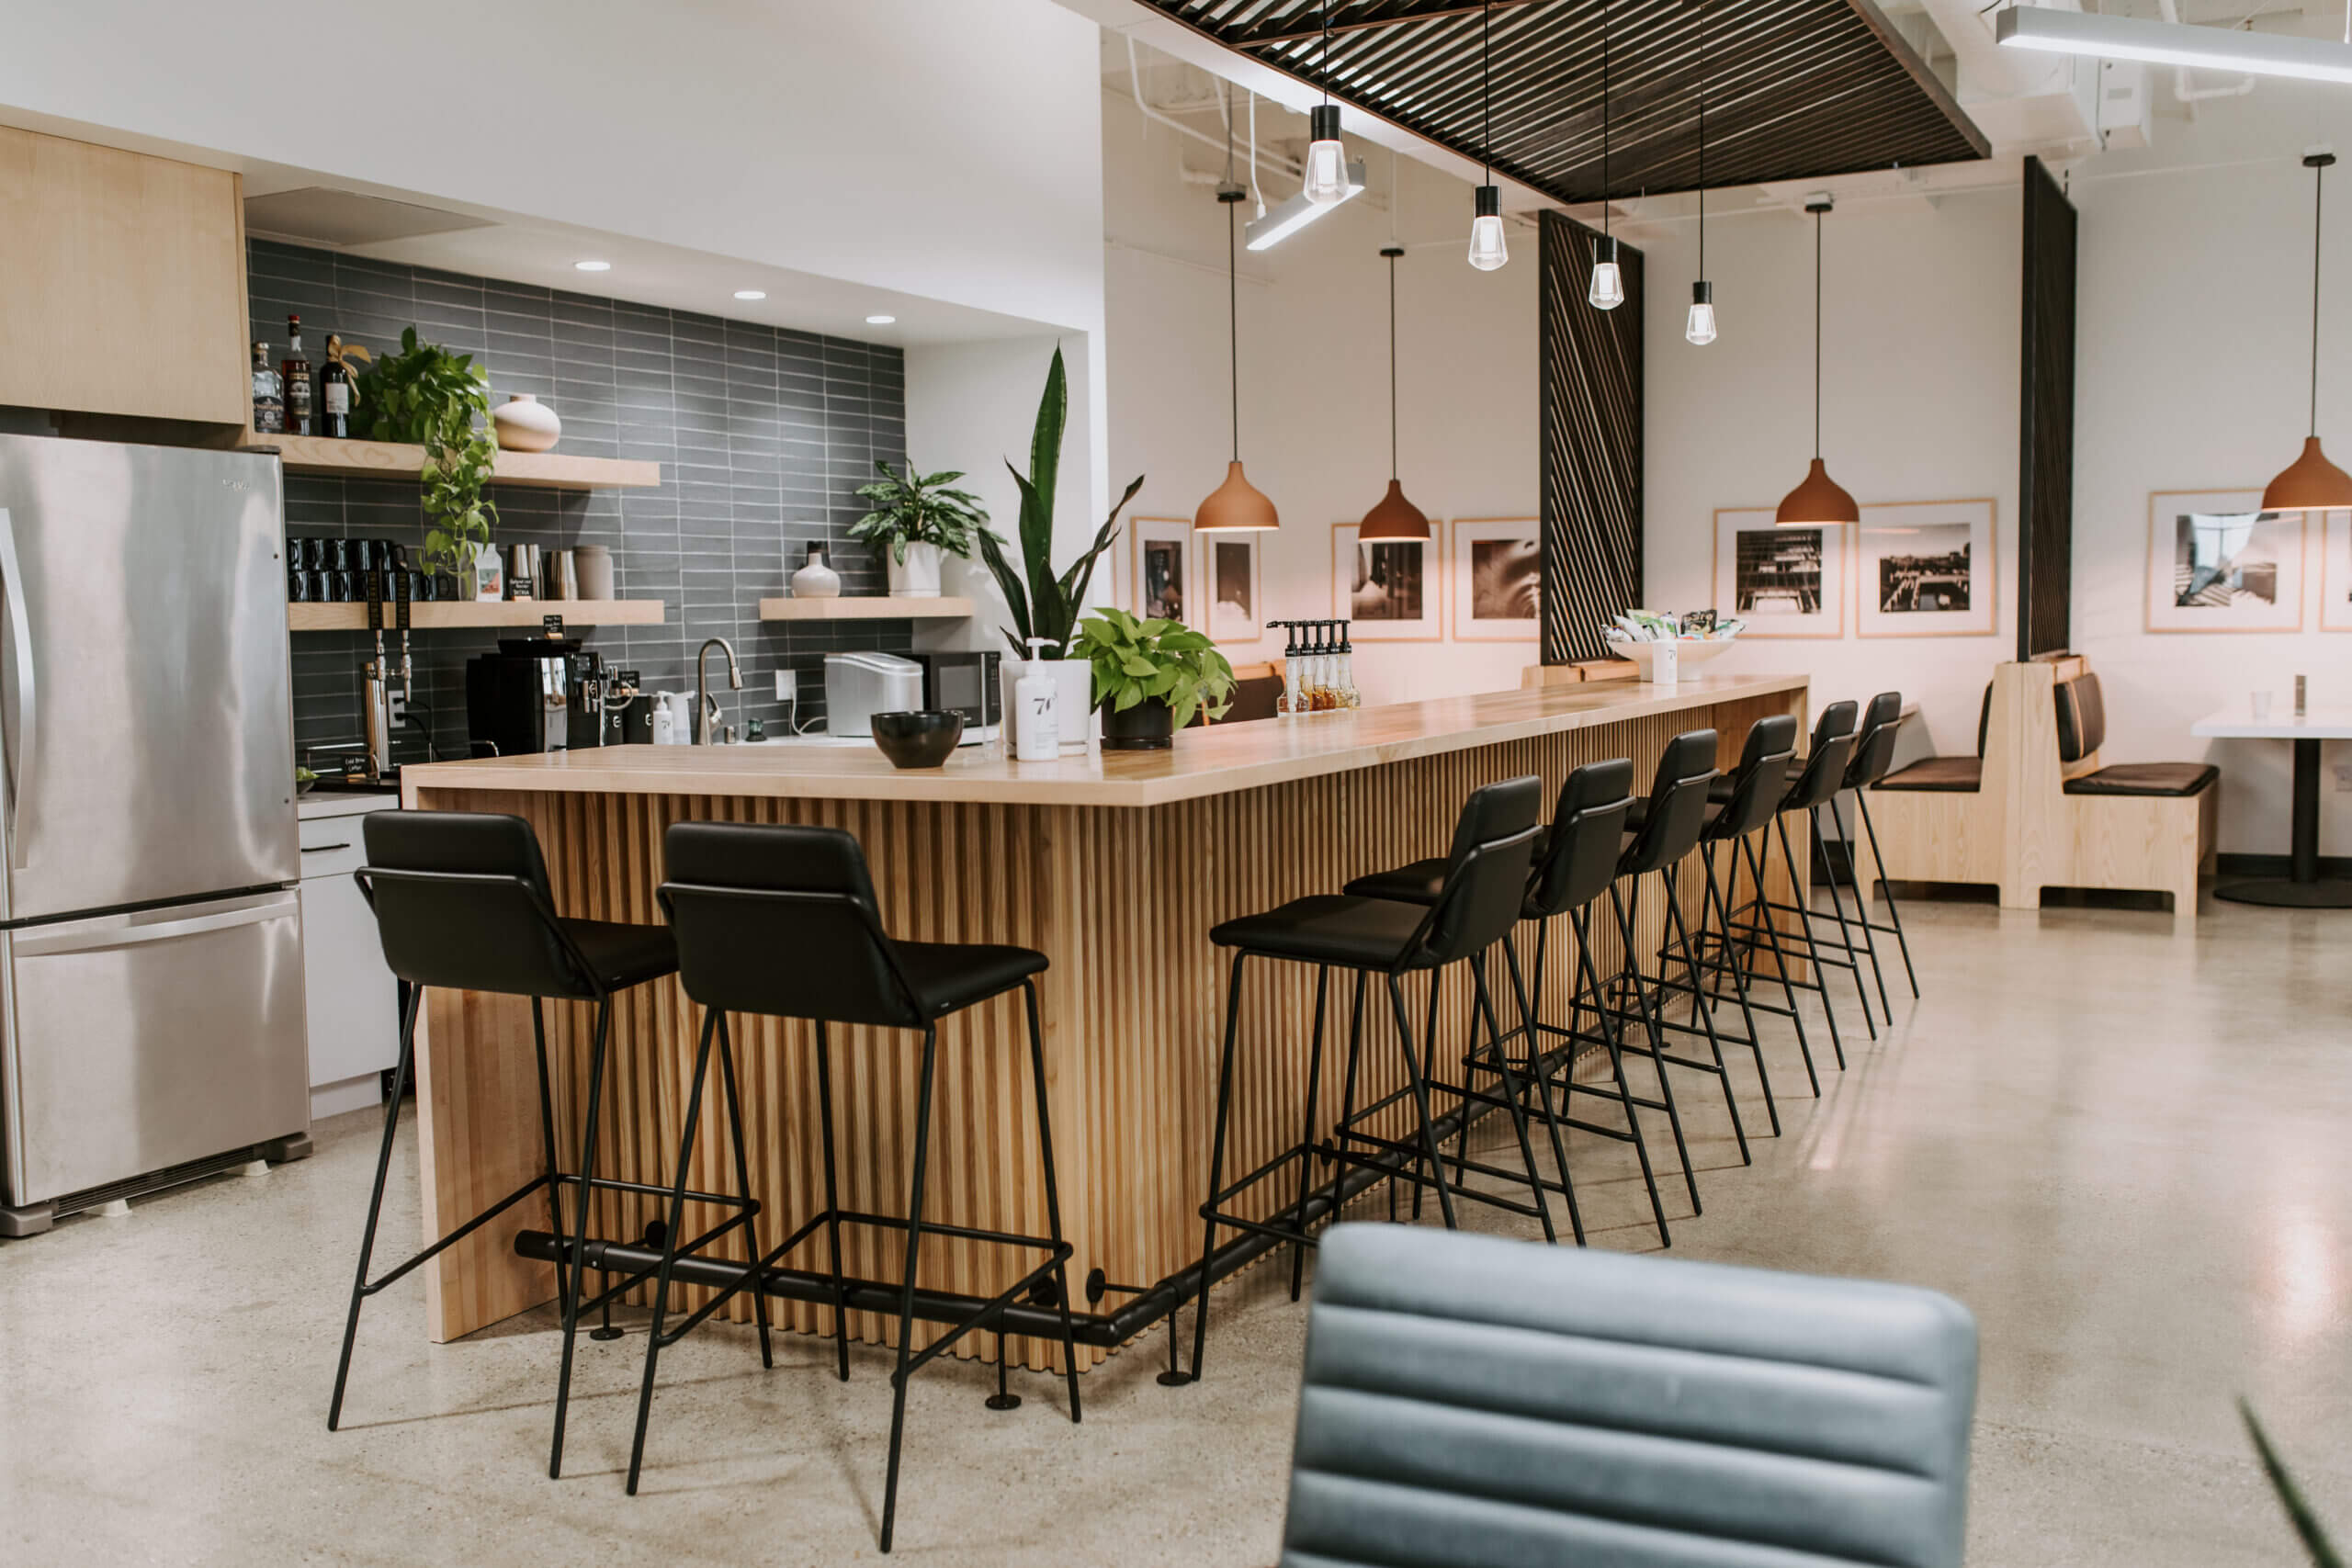 Justice HQ DTLA kitchen and bar area